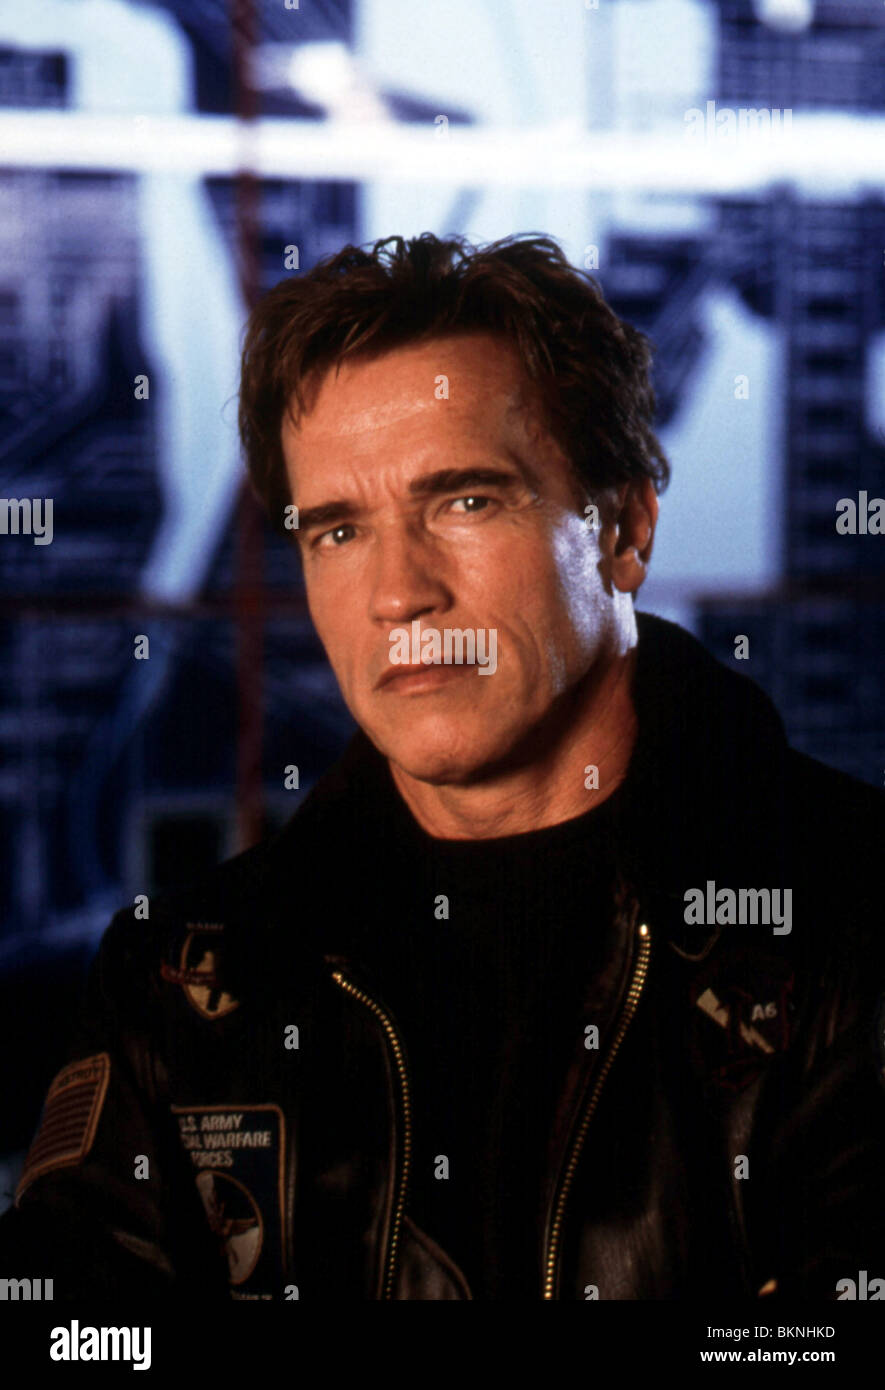 THE 6TH DAY (2000) THE SIXTH DAY (ALT) ARNOLD SCHWARZENEGGER 6THD 035